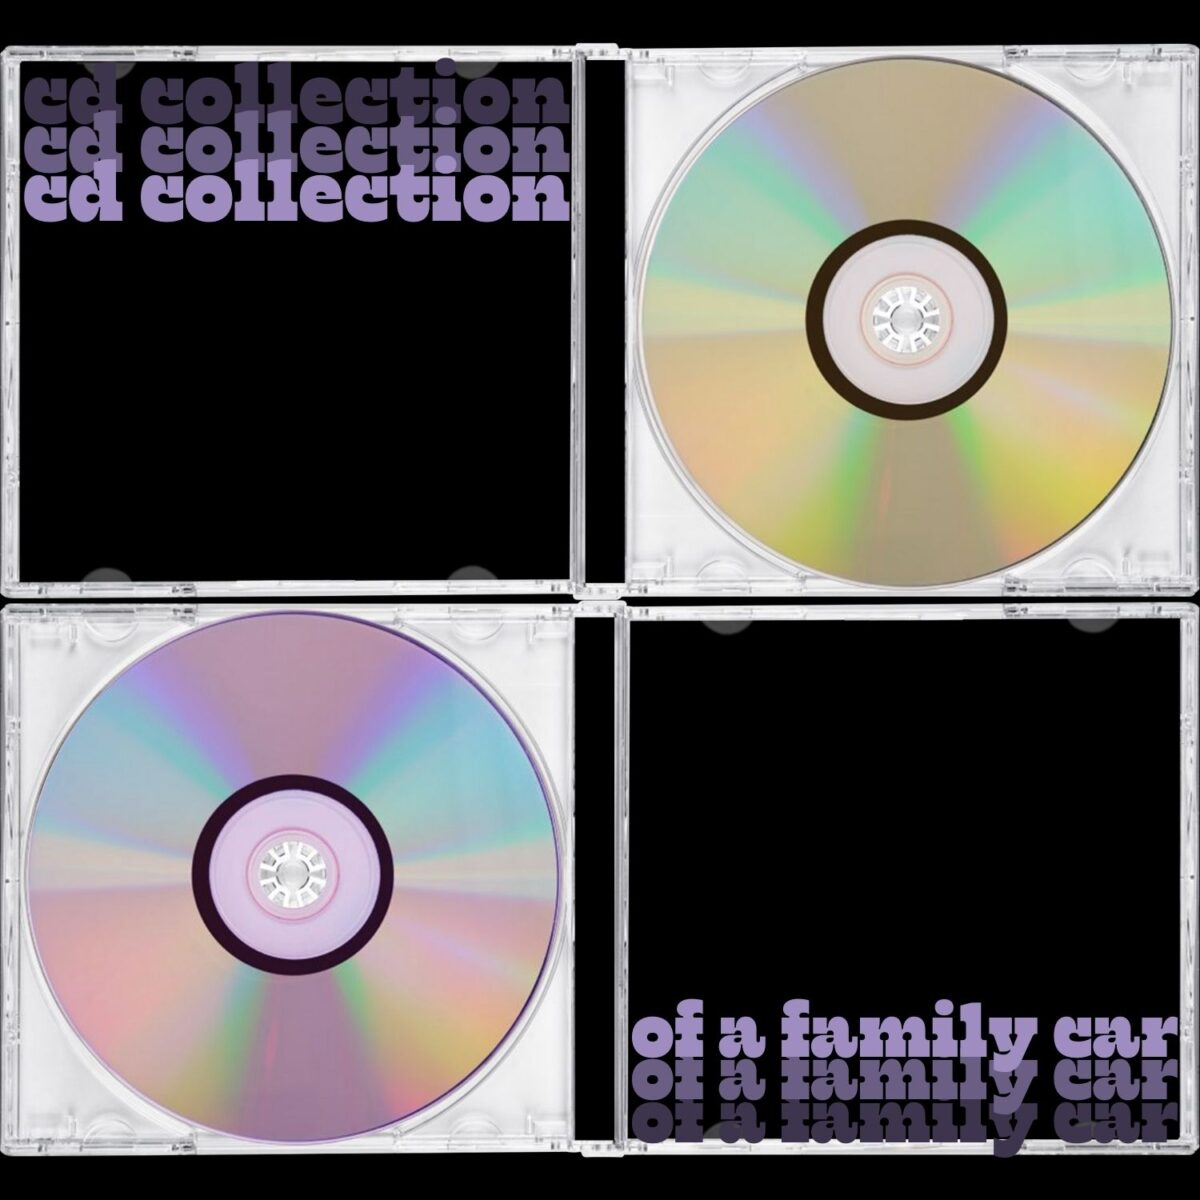 """Two CD cases with cd's in them. Purple text in the top left that says """"cd collection"""" three times, gradually getting lighter as it goes down. Text that says """"of a family car"""" that is purple and gradually get's darker as it goes down."""